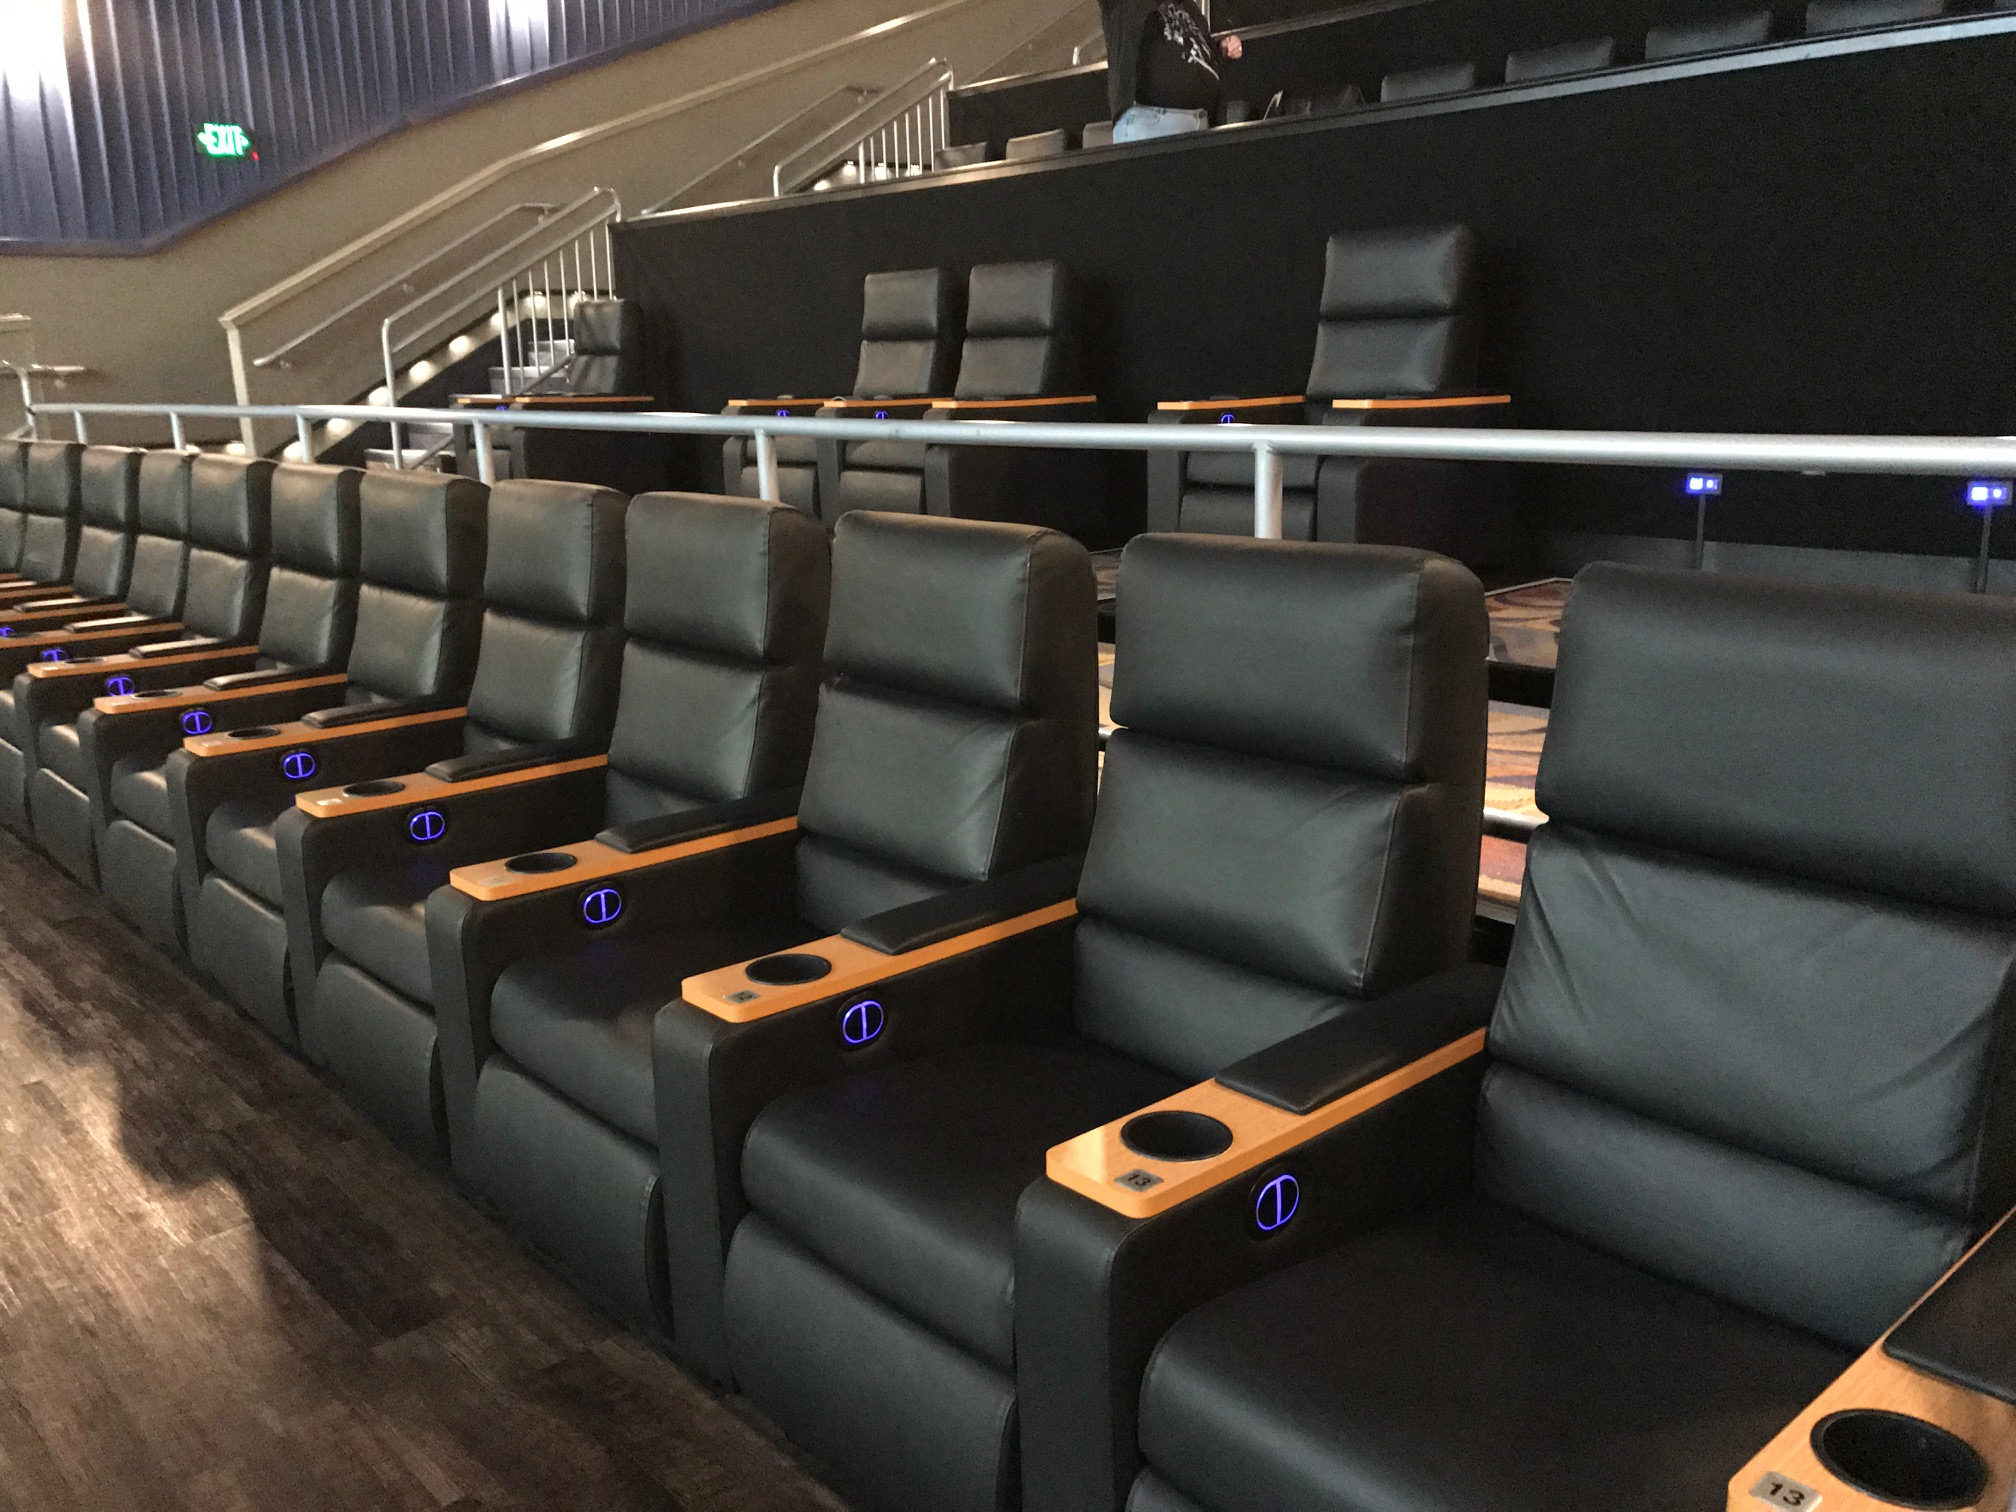 Regal Hamburg Reserve Your Recliner As Two Regal Theaters Add Plush Seating